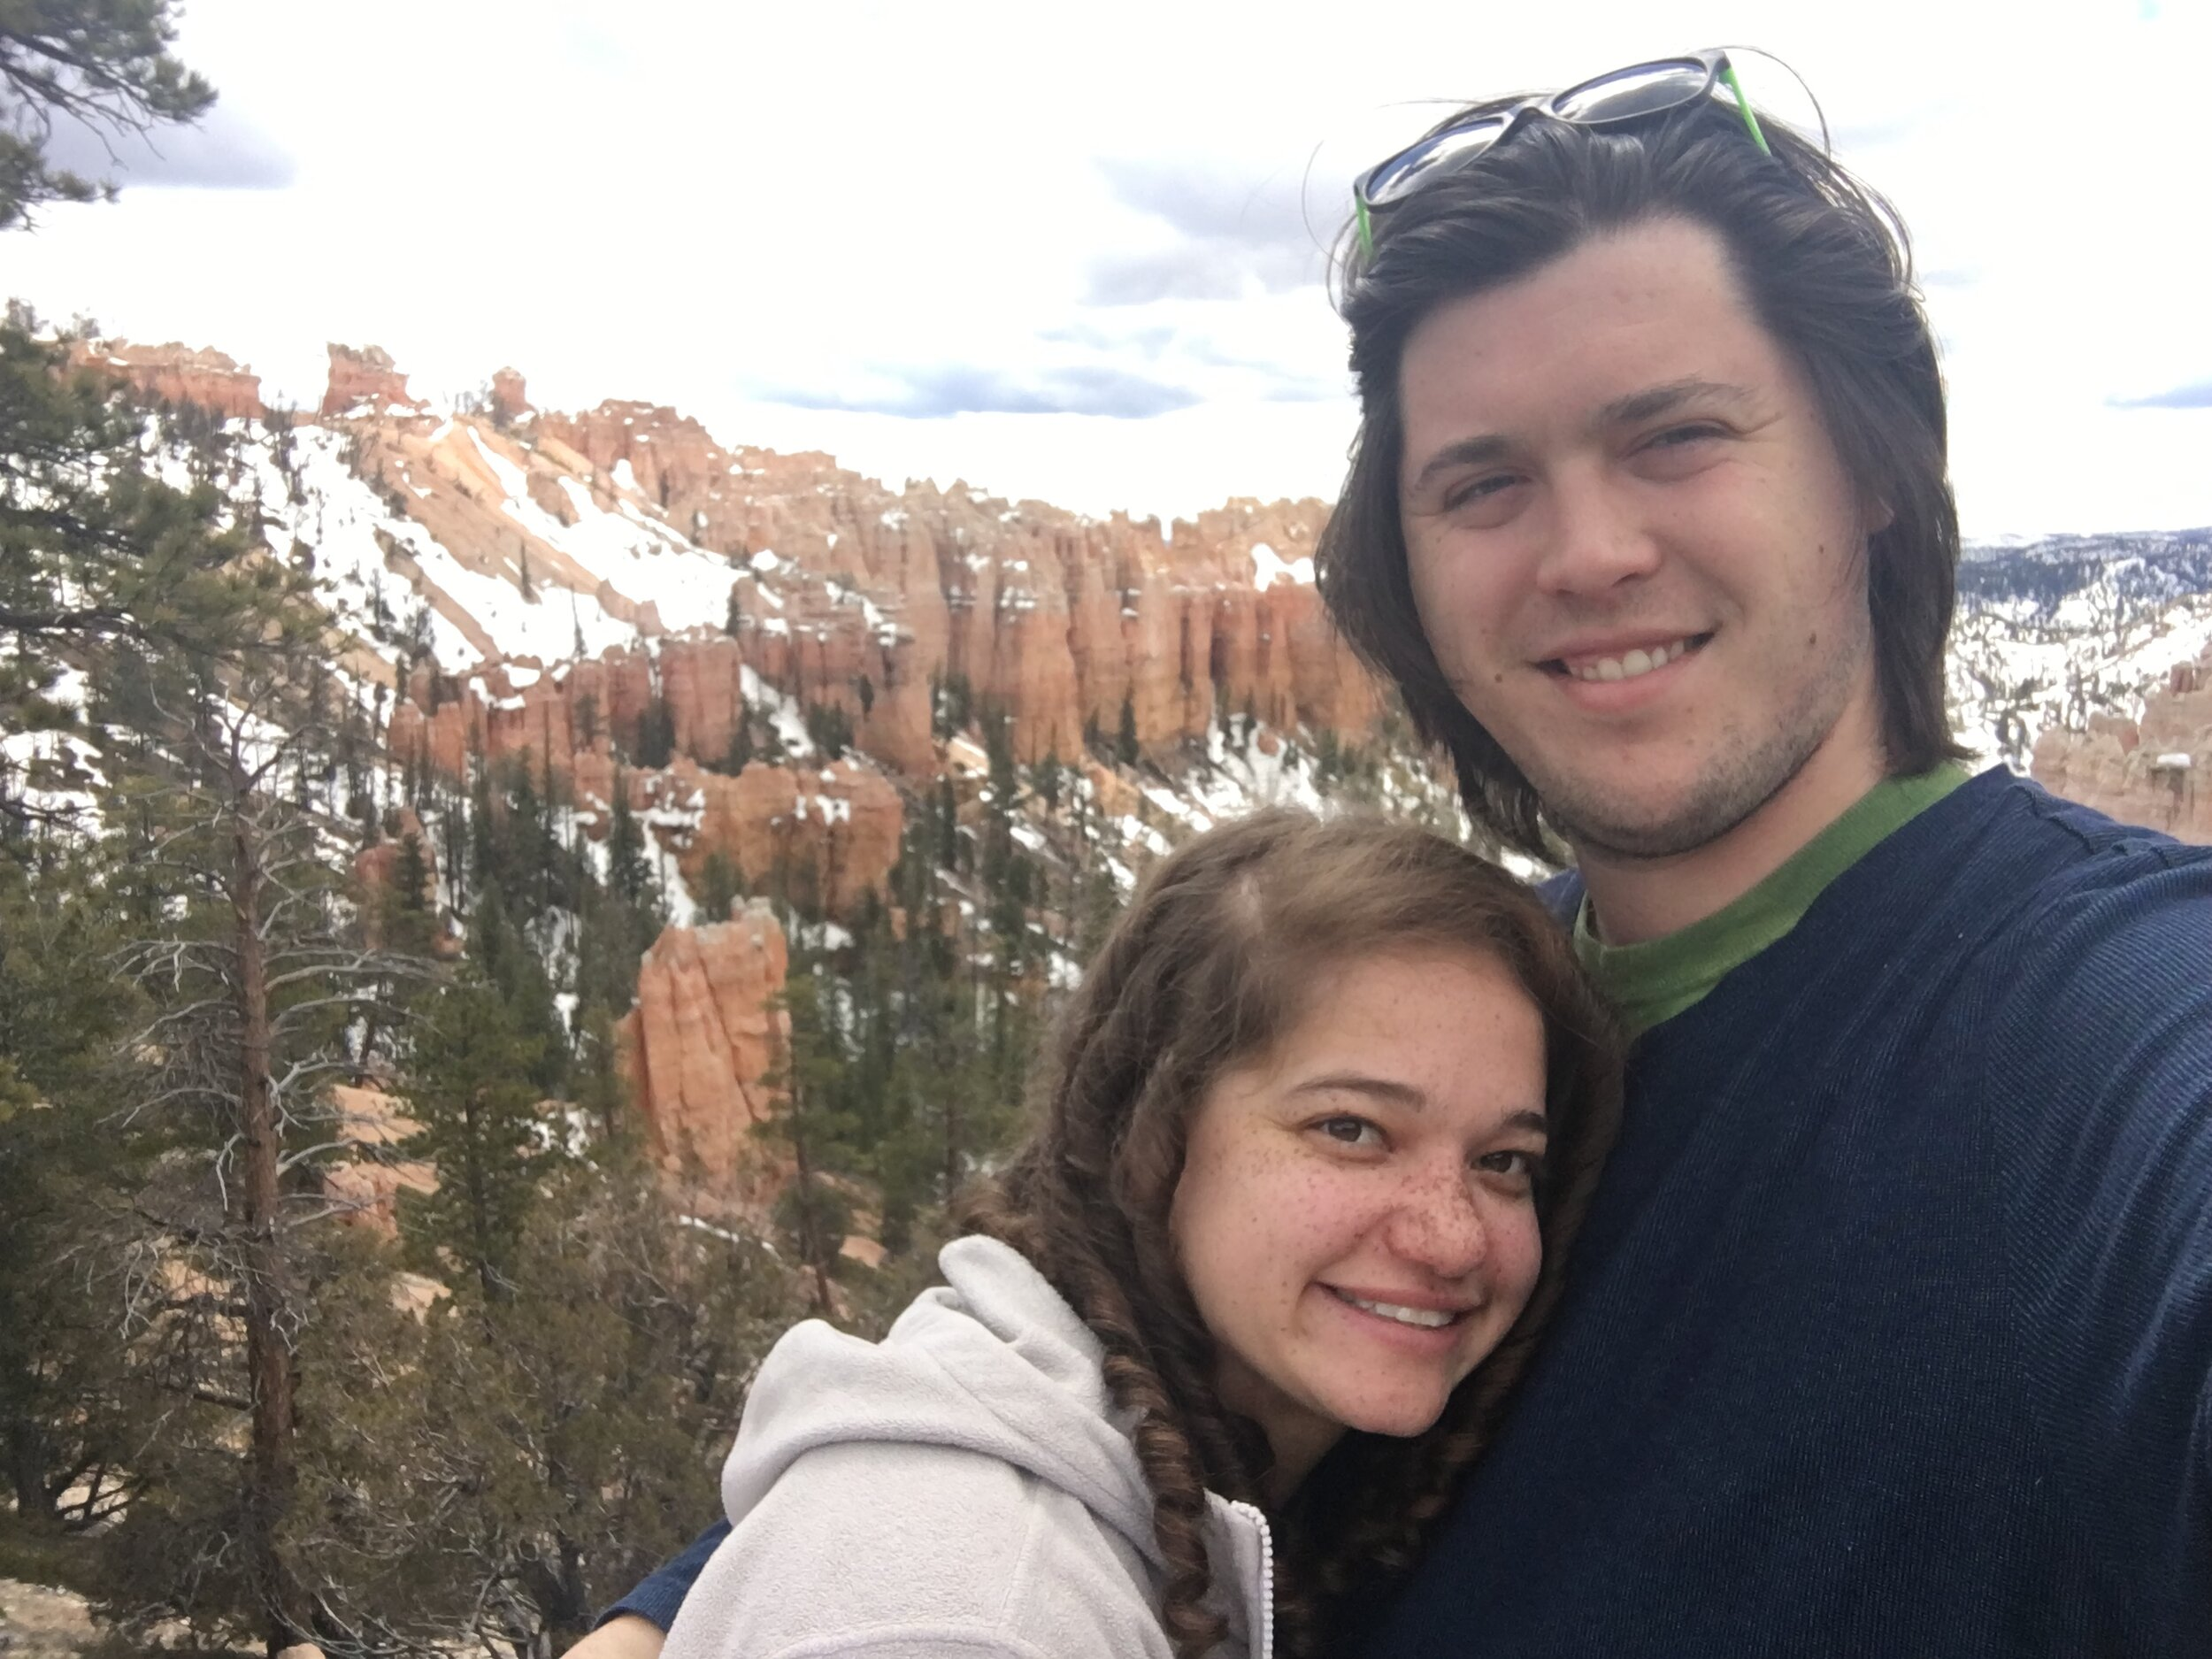 At Bryce Canyon with her husband.